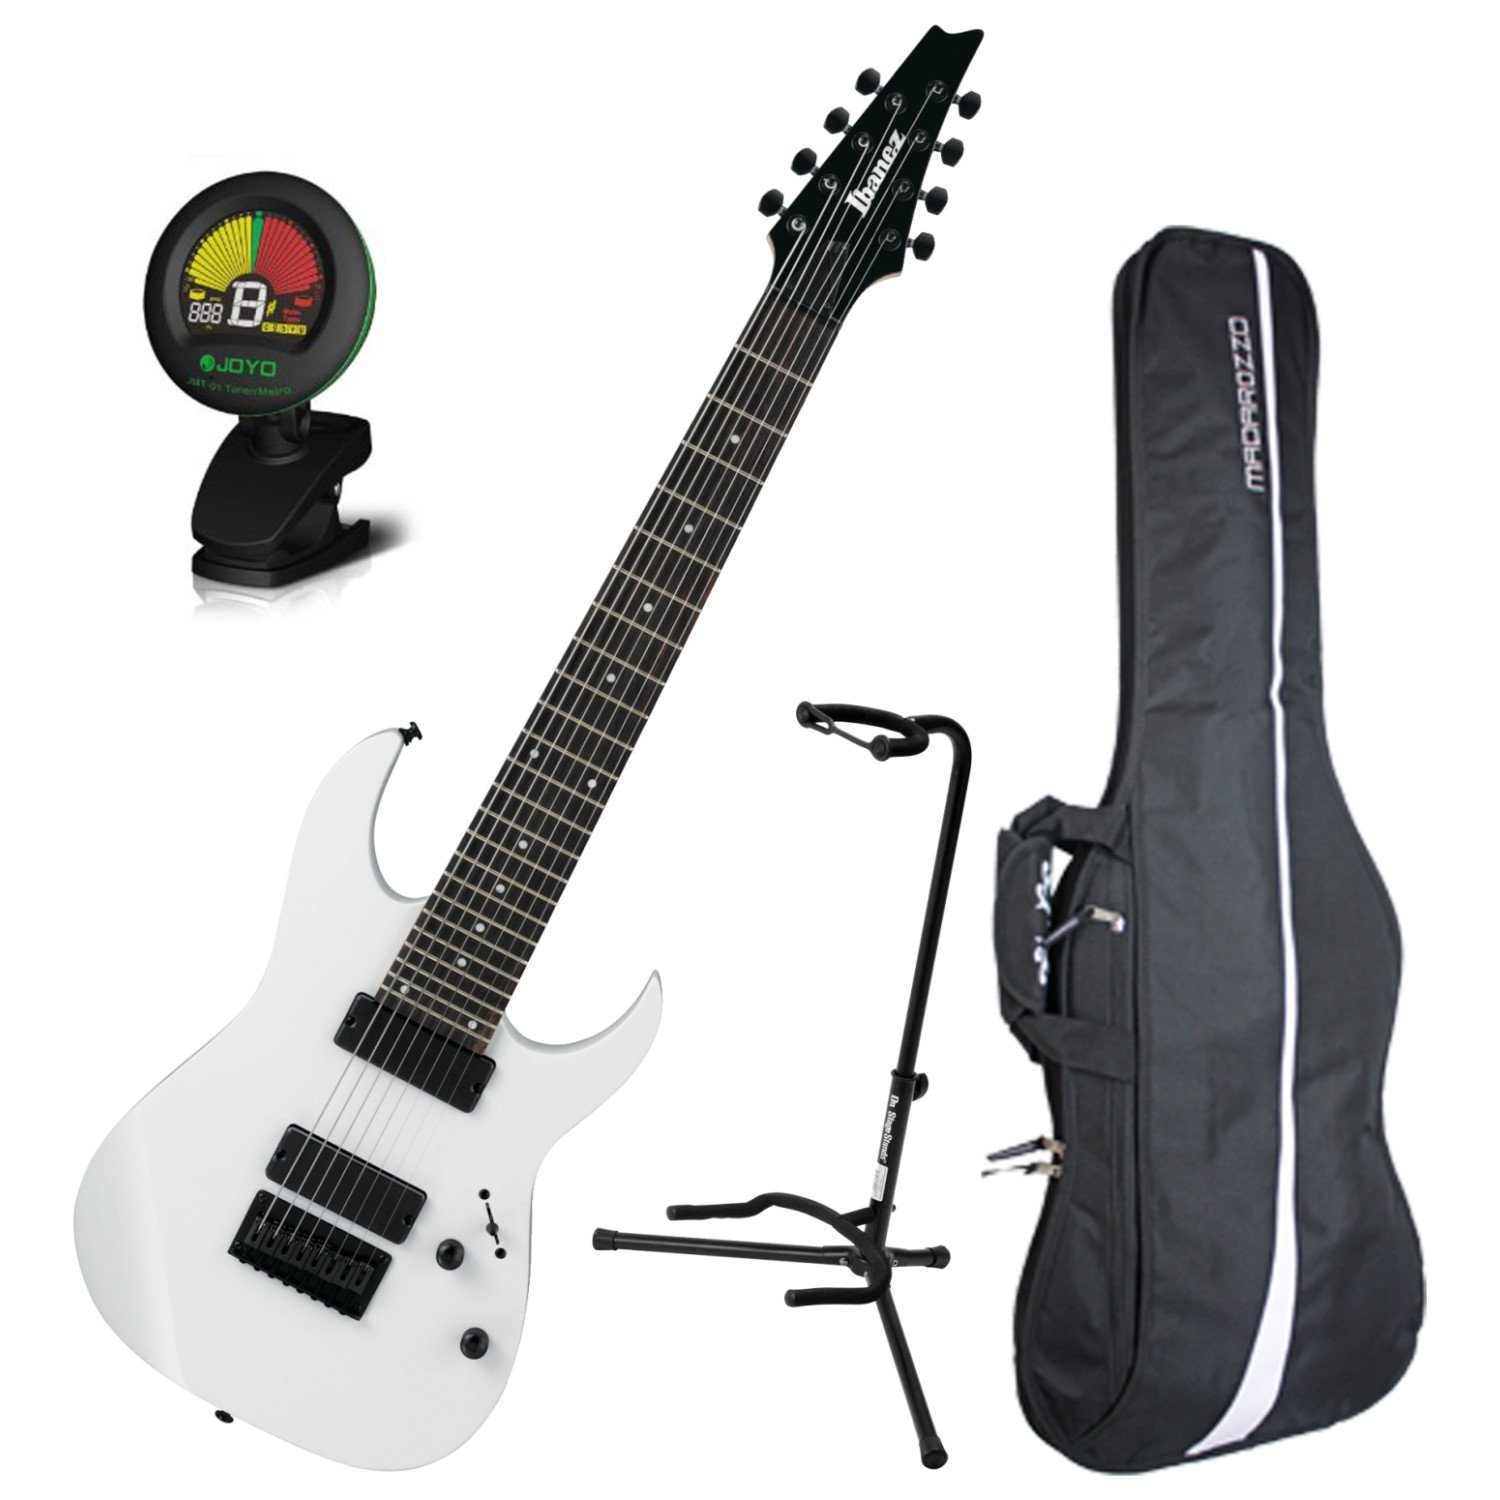 ibanez rg8 8 string electric guitar white w gig bag tuner and stand guitar affinity. Black Bedroom Furniture Sets. Home Design Ideas